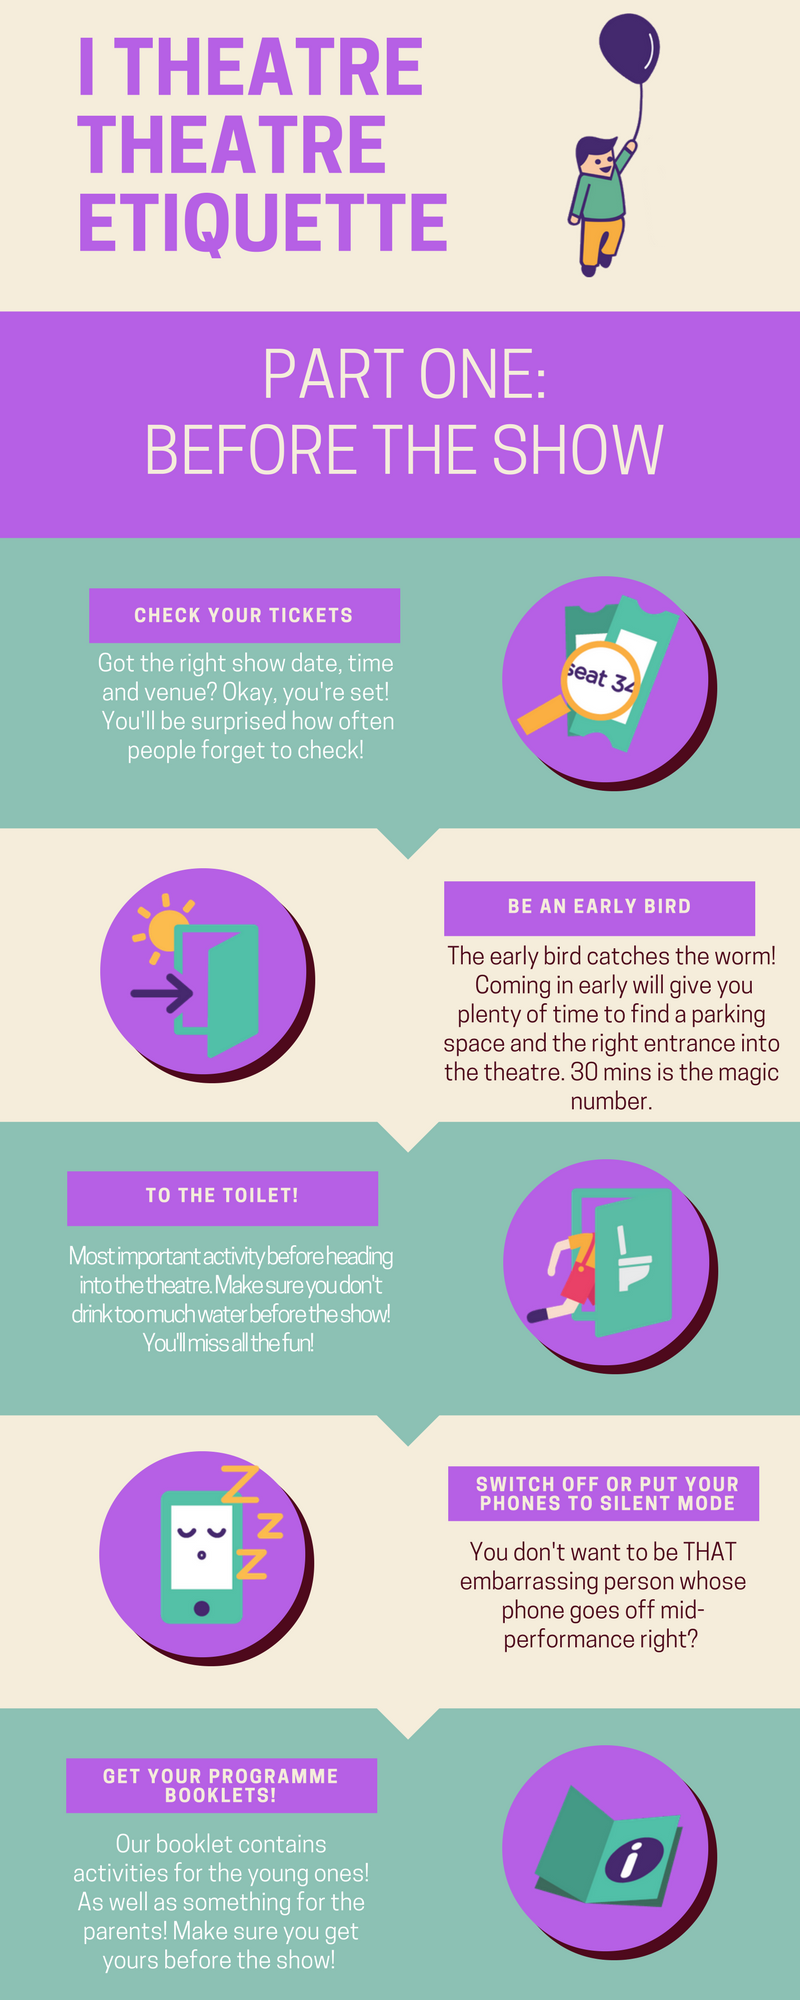 Theatre etiquette Before the show